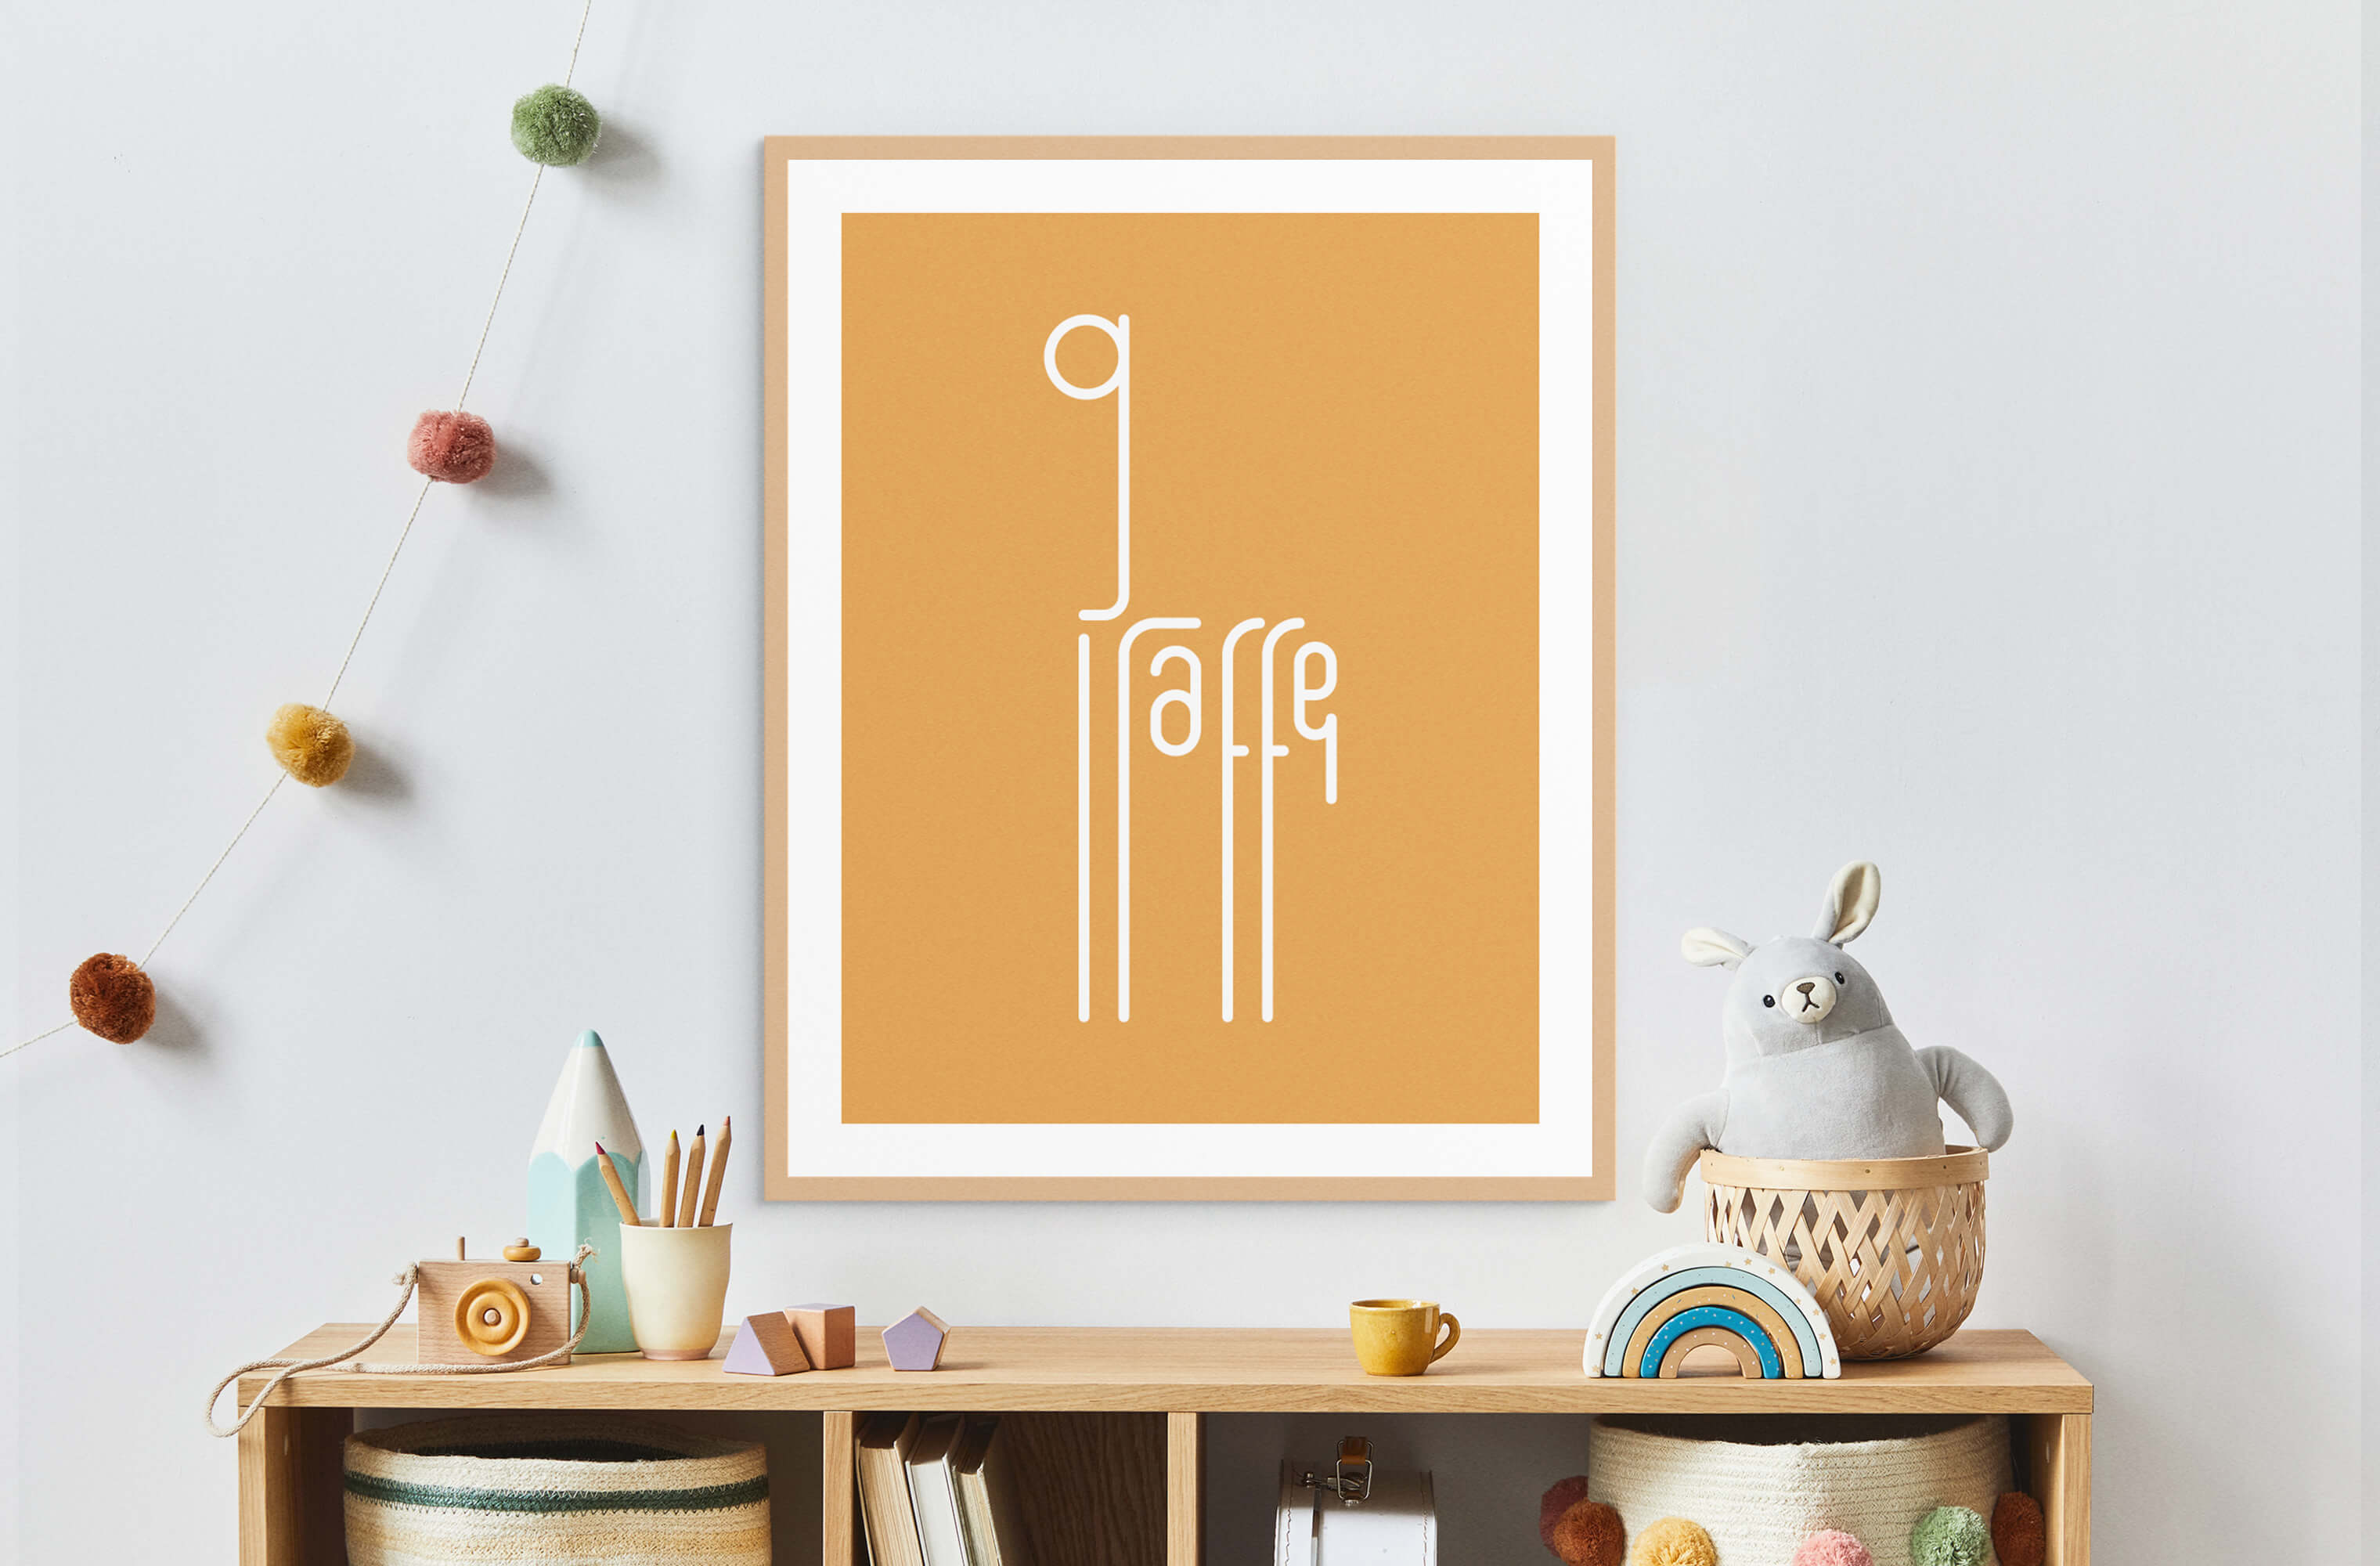 Framed Word Animals print displaying the illustration of a giraffe on the wall of a child's room